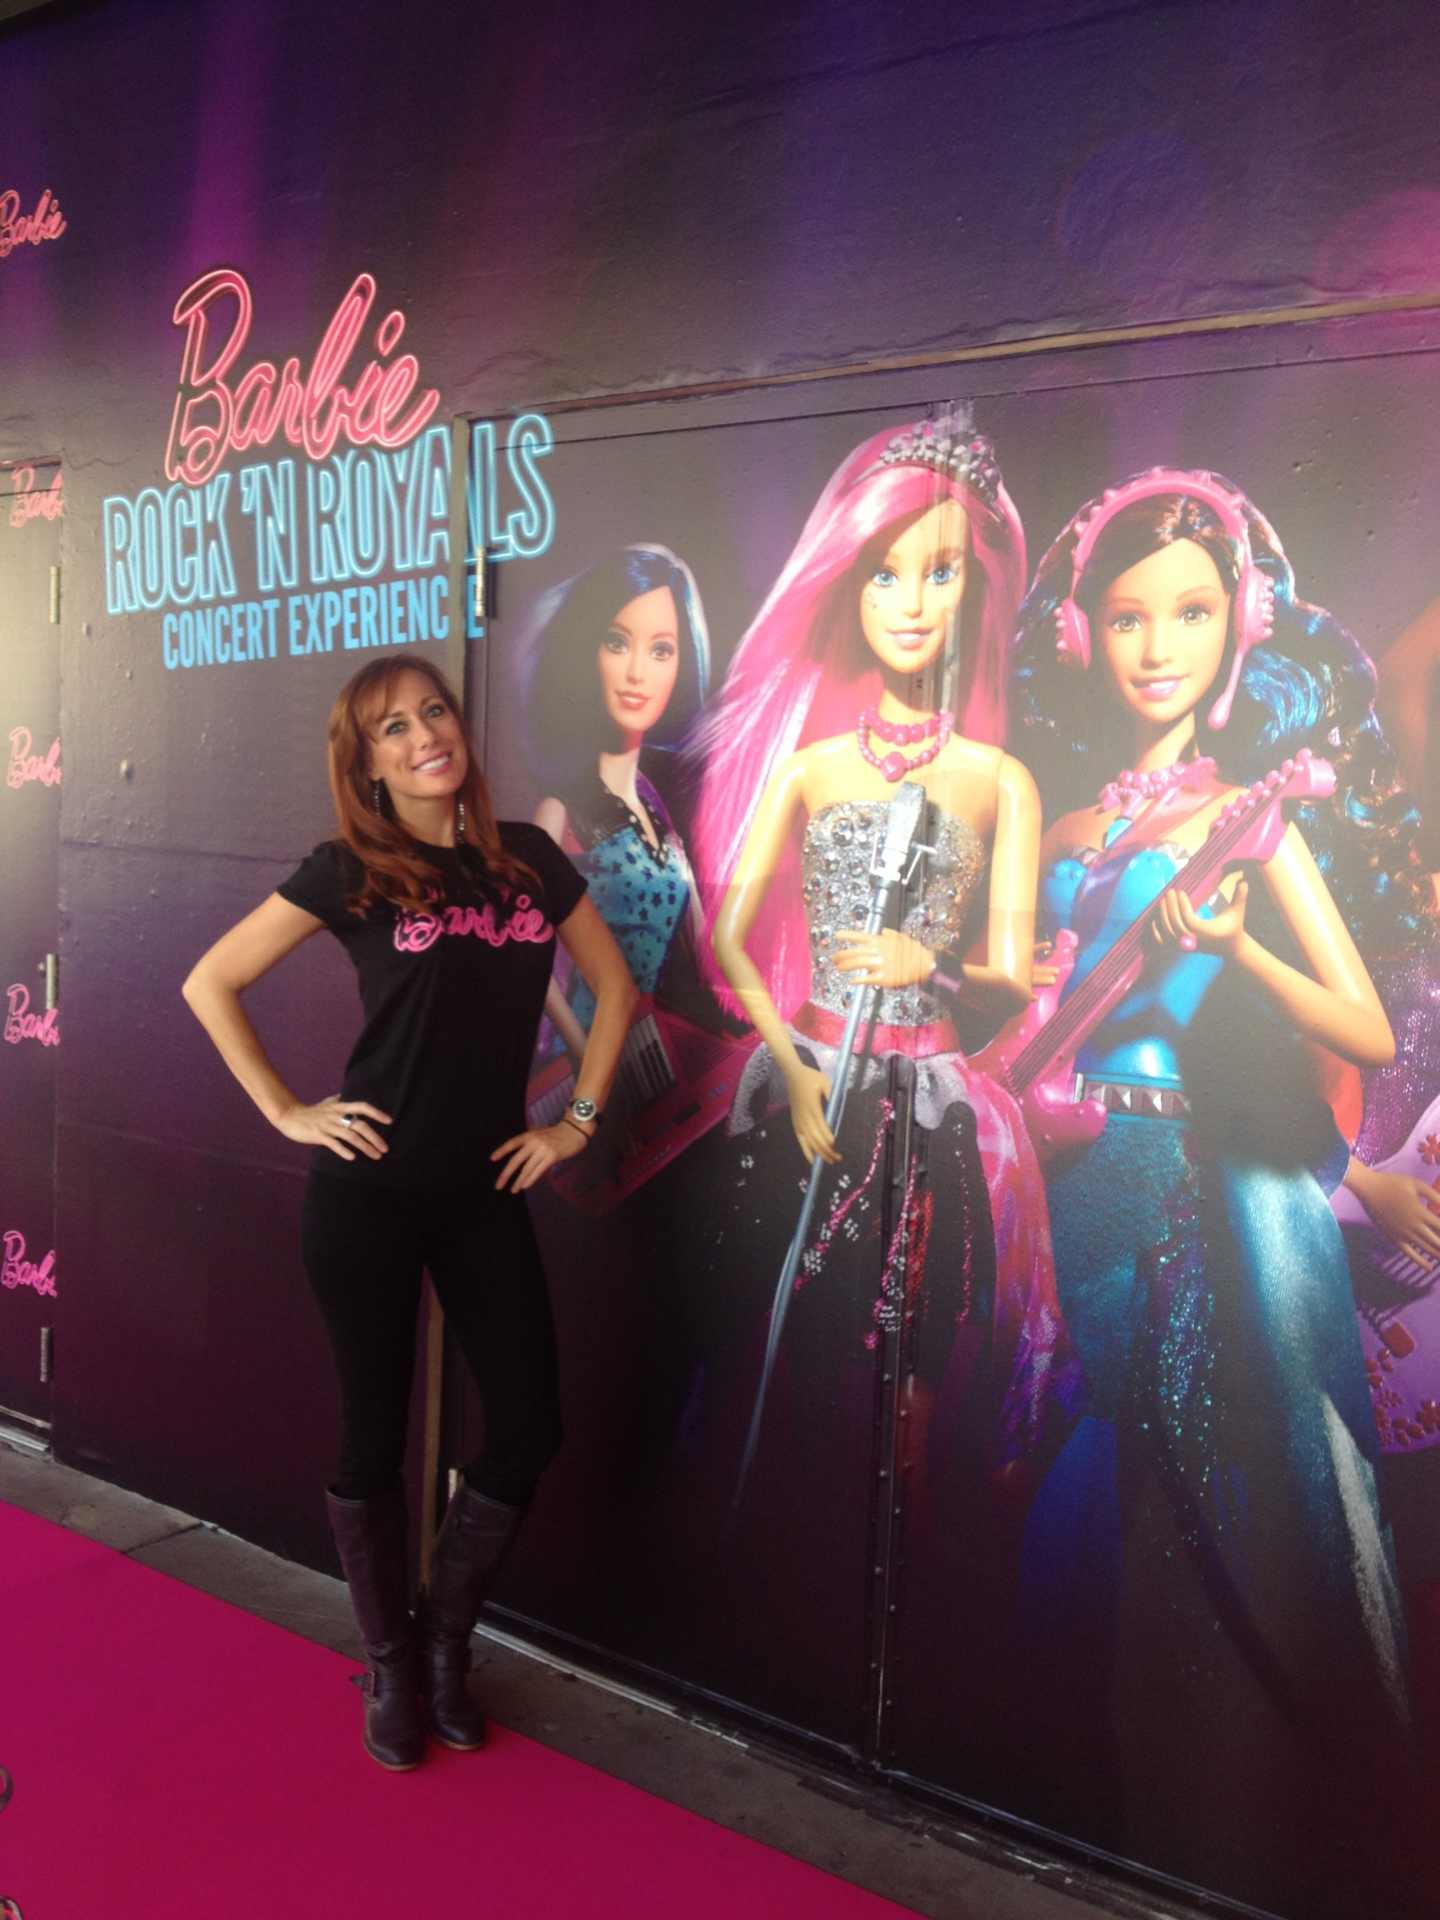 Promo Model - Rock & Royals Concert - Barbie